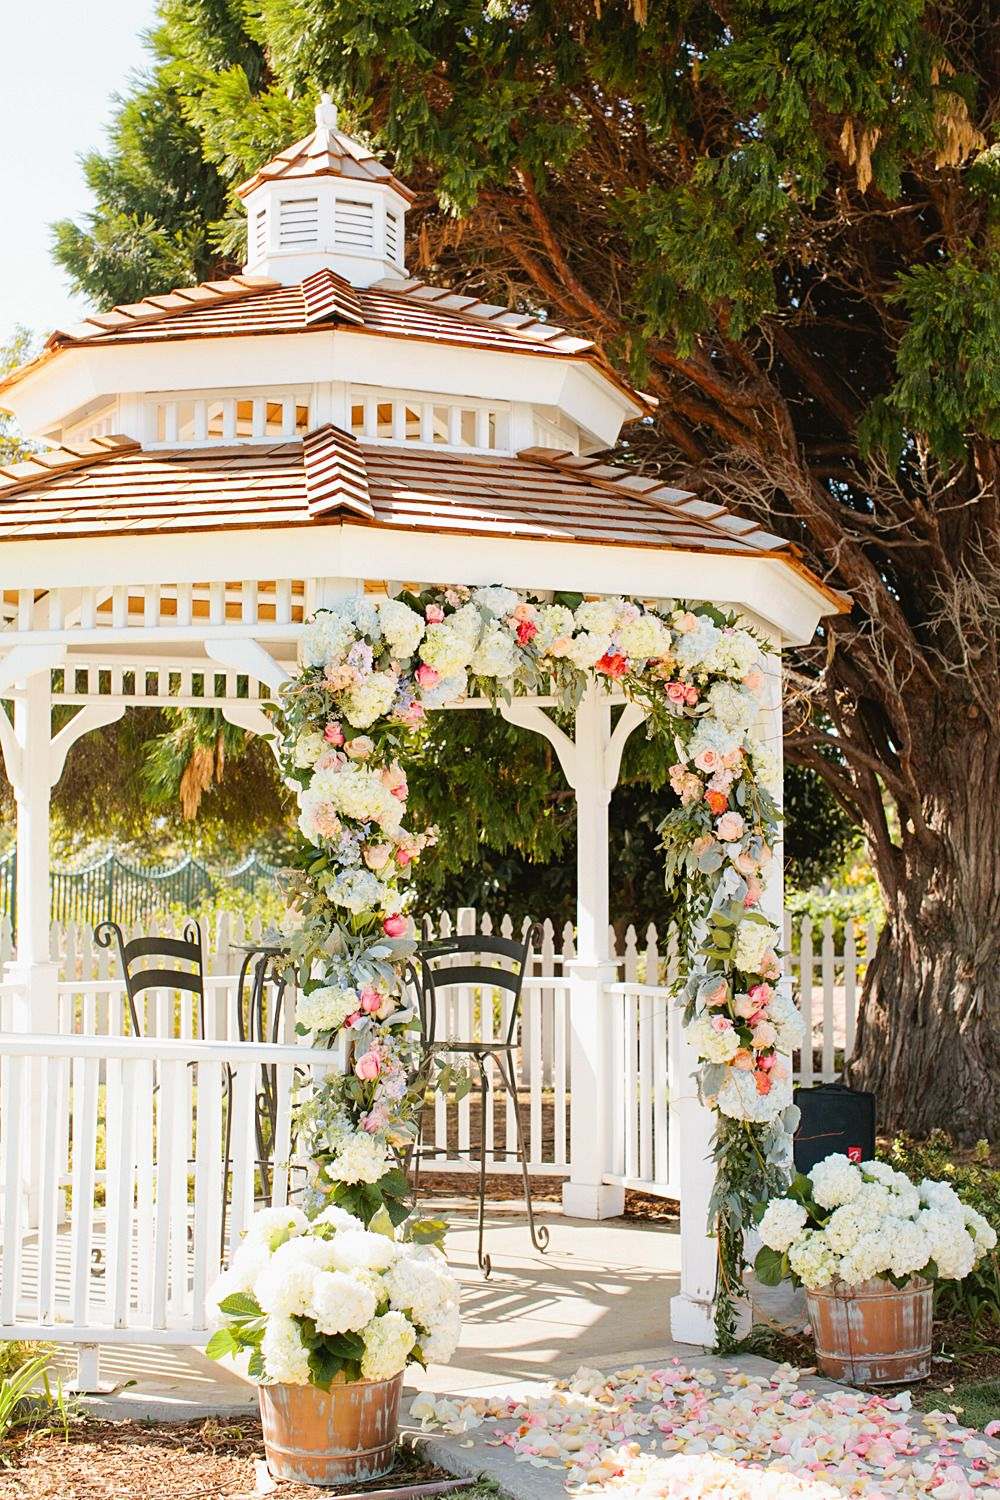 Whimsical Woodland Garden Wedding Gazebo Decorations Outdoor